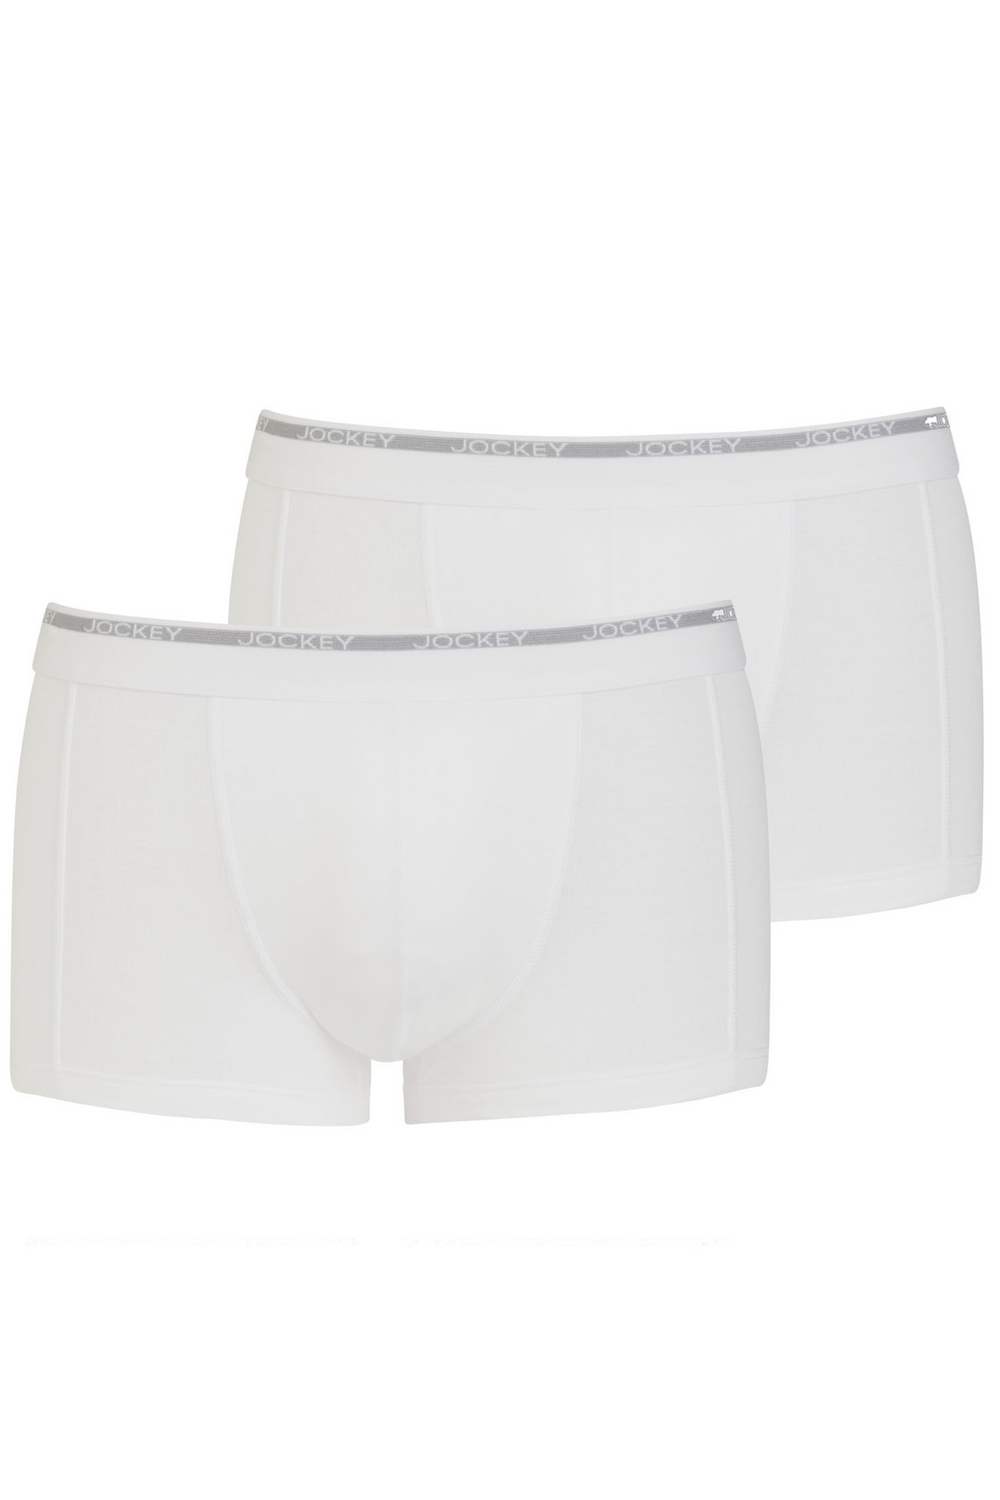 Jockey® Modern Classic Short Trunk 2 Pack